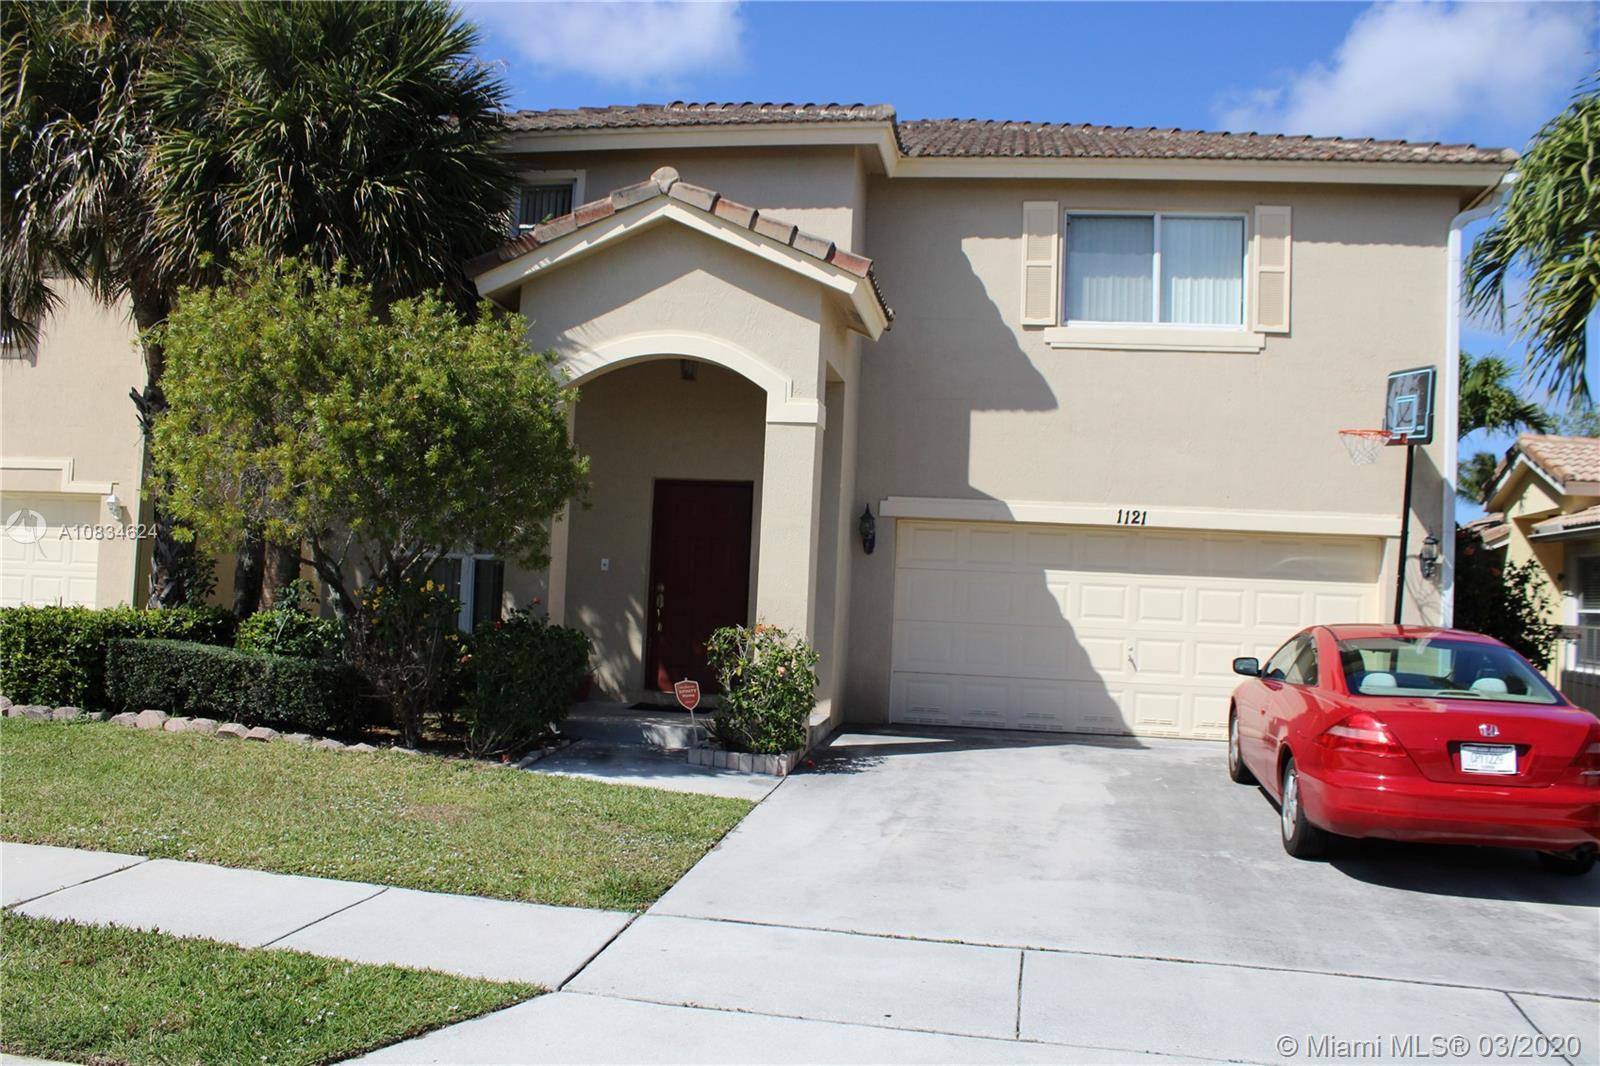 Extremely Well Maintained 4 Bed 2.5 Bath Home in the Gate Community of Fosters Mill Beautifully 2 St